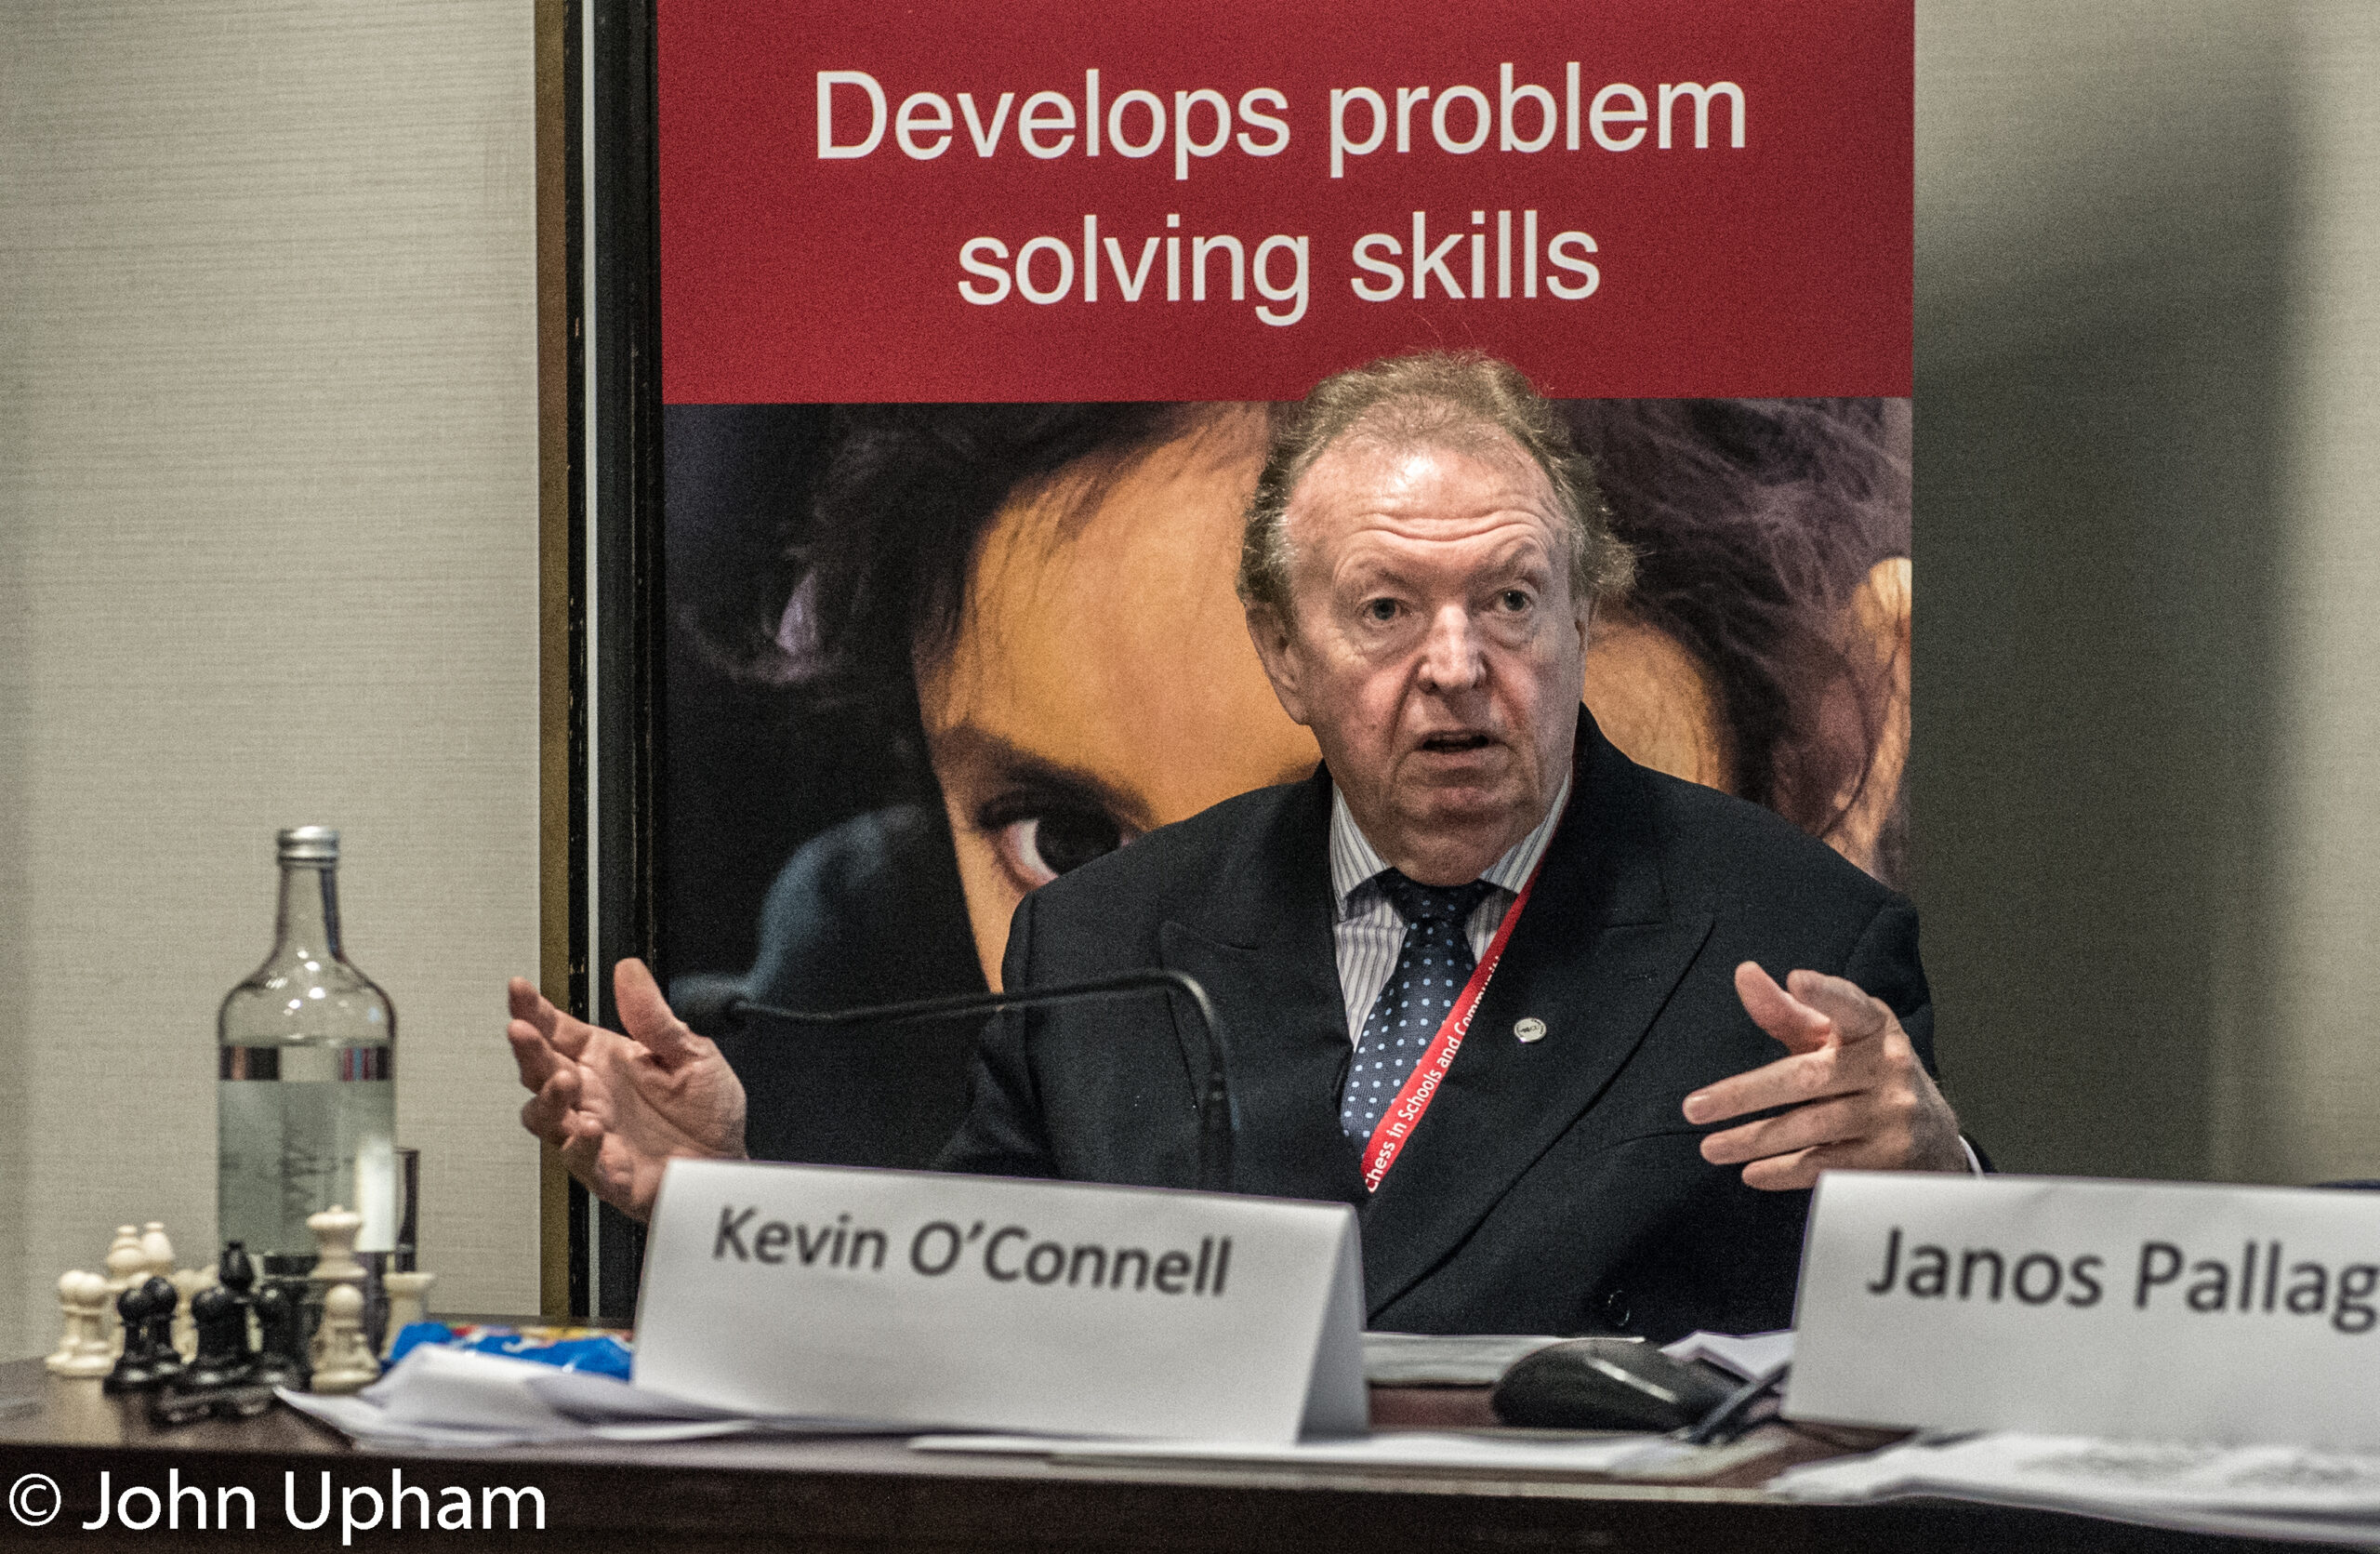 Kevin O'Connell at the London Chess Conference, 2016, courtesy of John Upham Photography